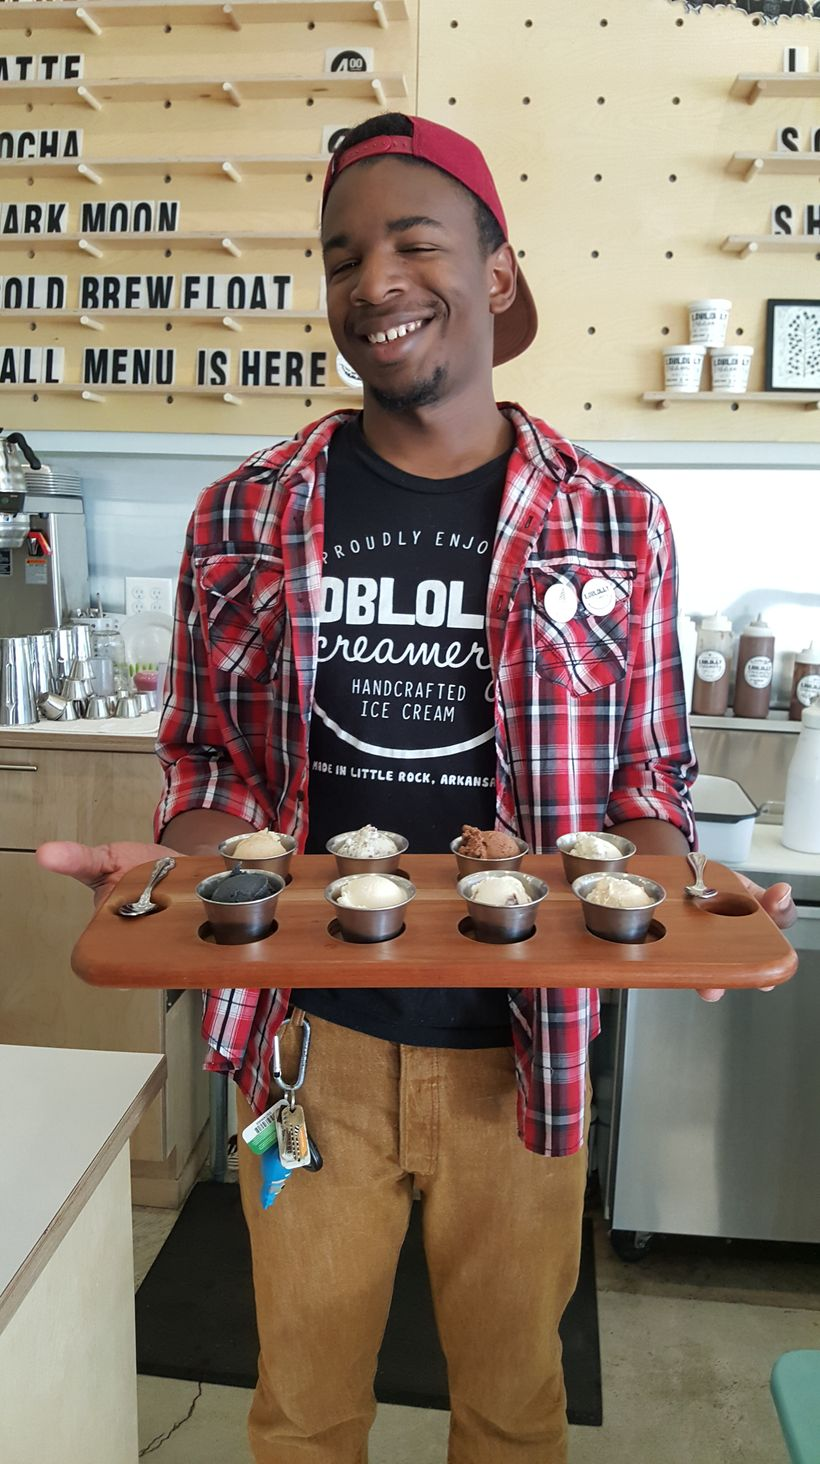 At Little Rock's Loblolly ice cream shop they serve ice cream flights. A FLIGHT of ice cream. What an awesome idea.